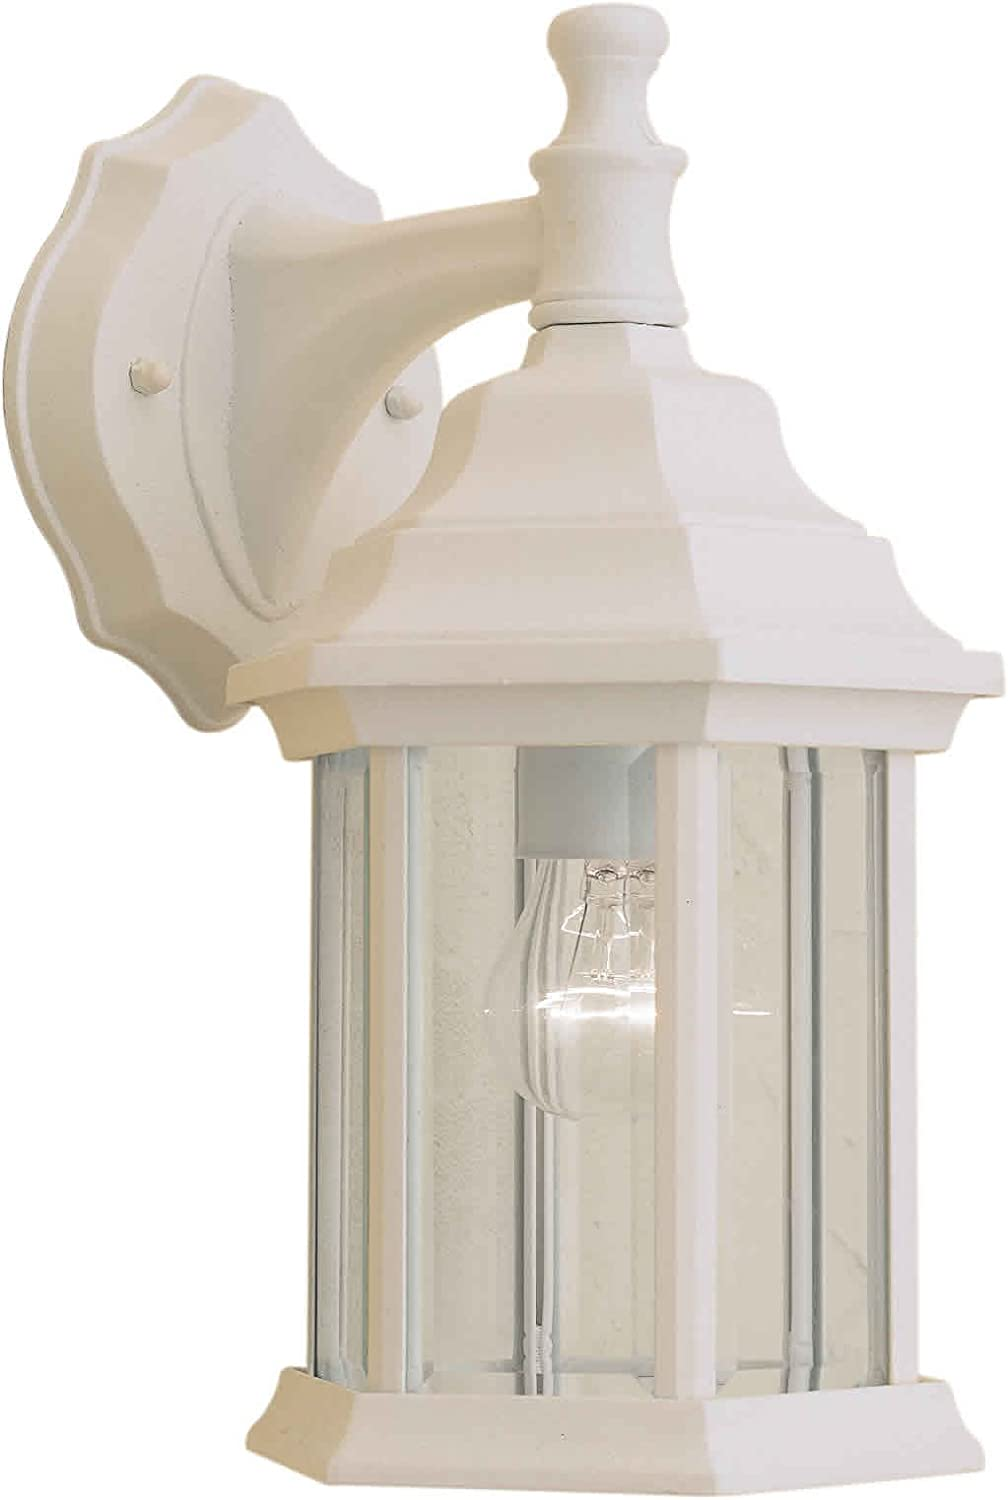 white outdoor wall lights lantern forte lighting 17150113 exterior wall light with clear beveled glass shades matte white porch lights amazoncom